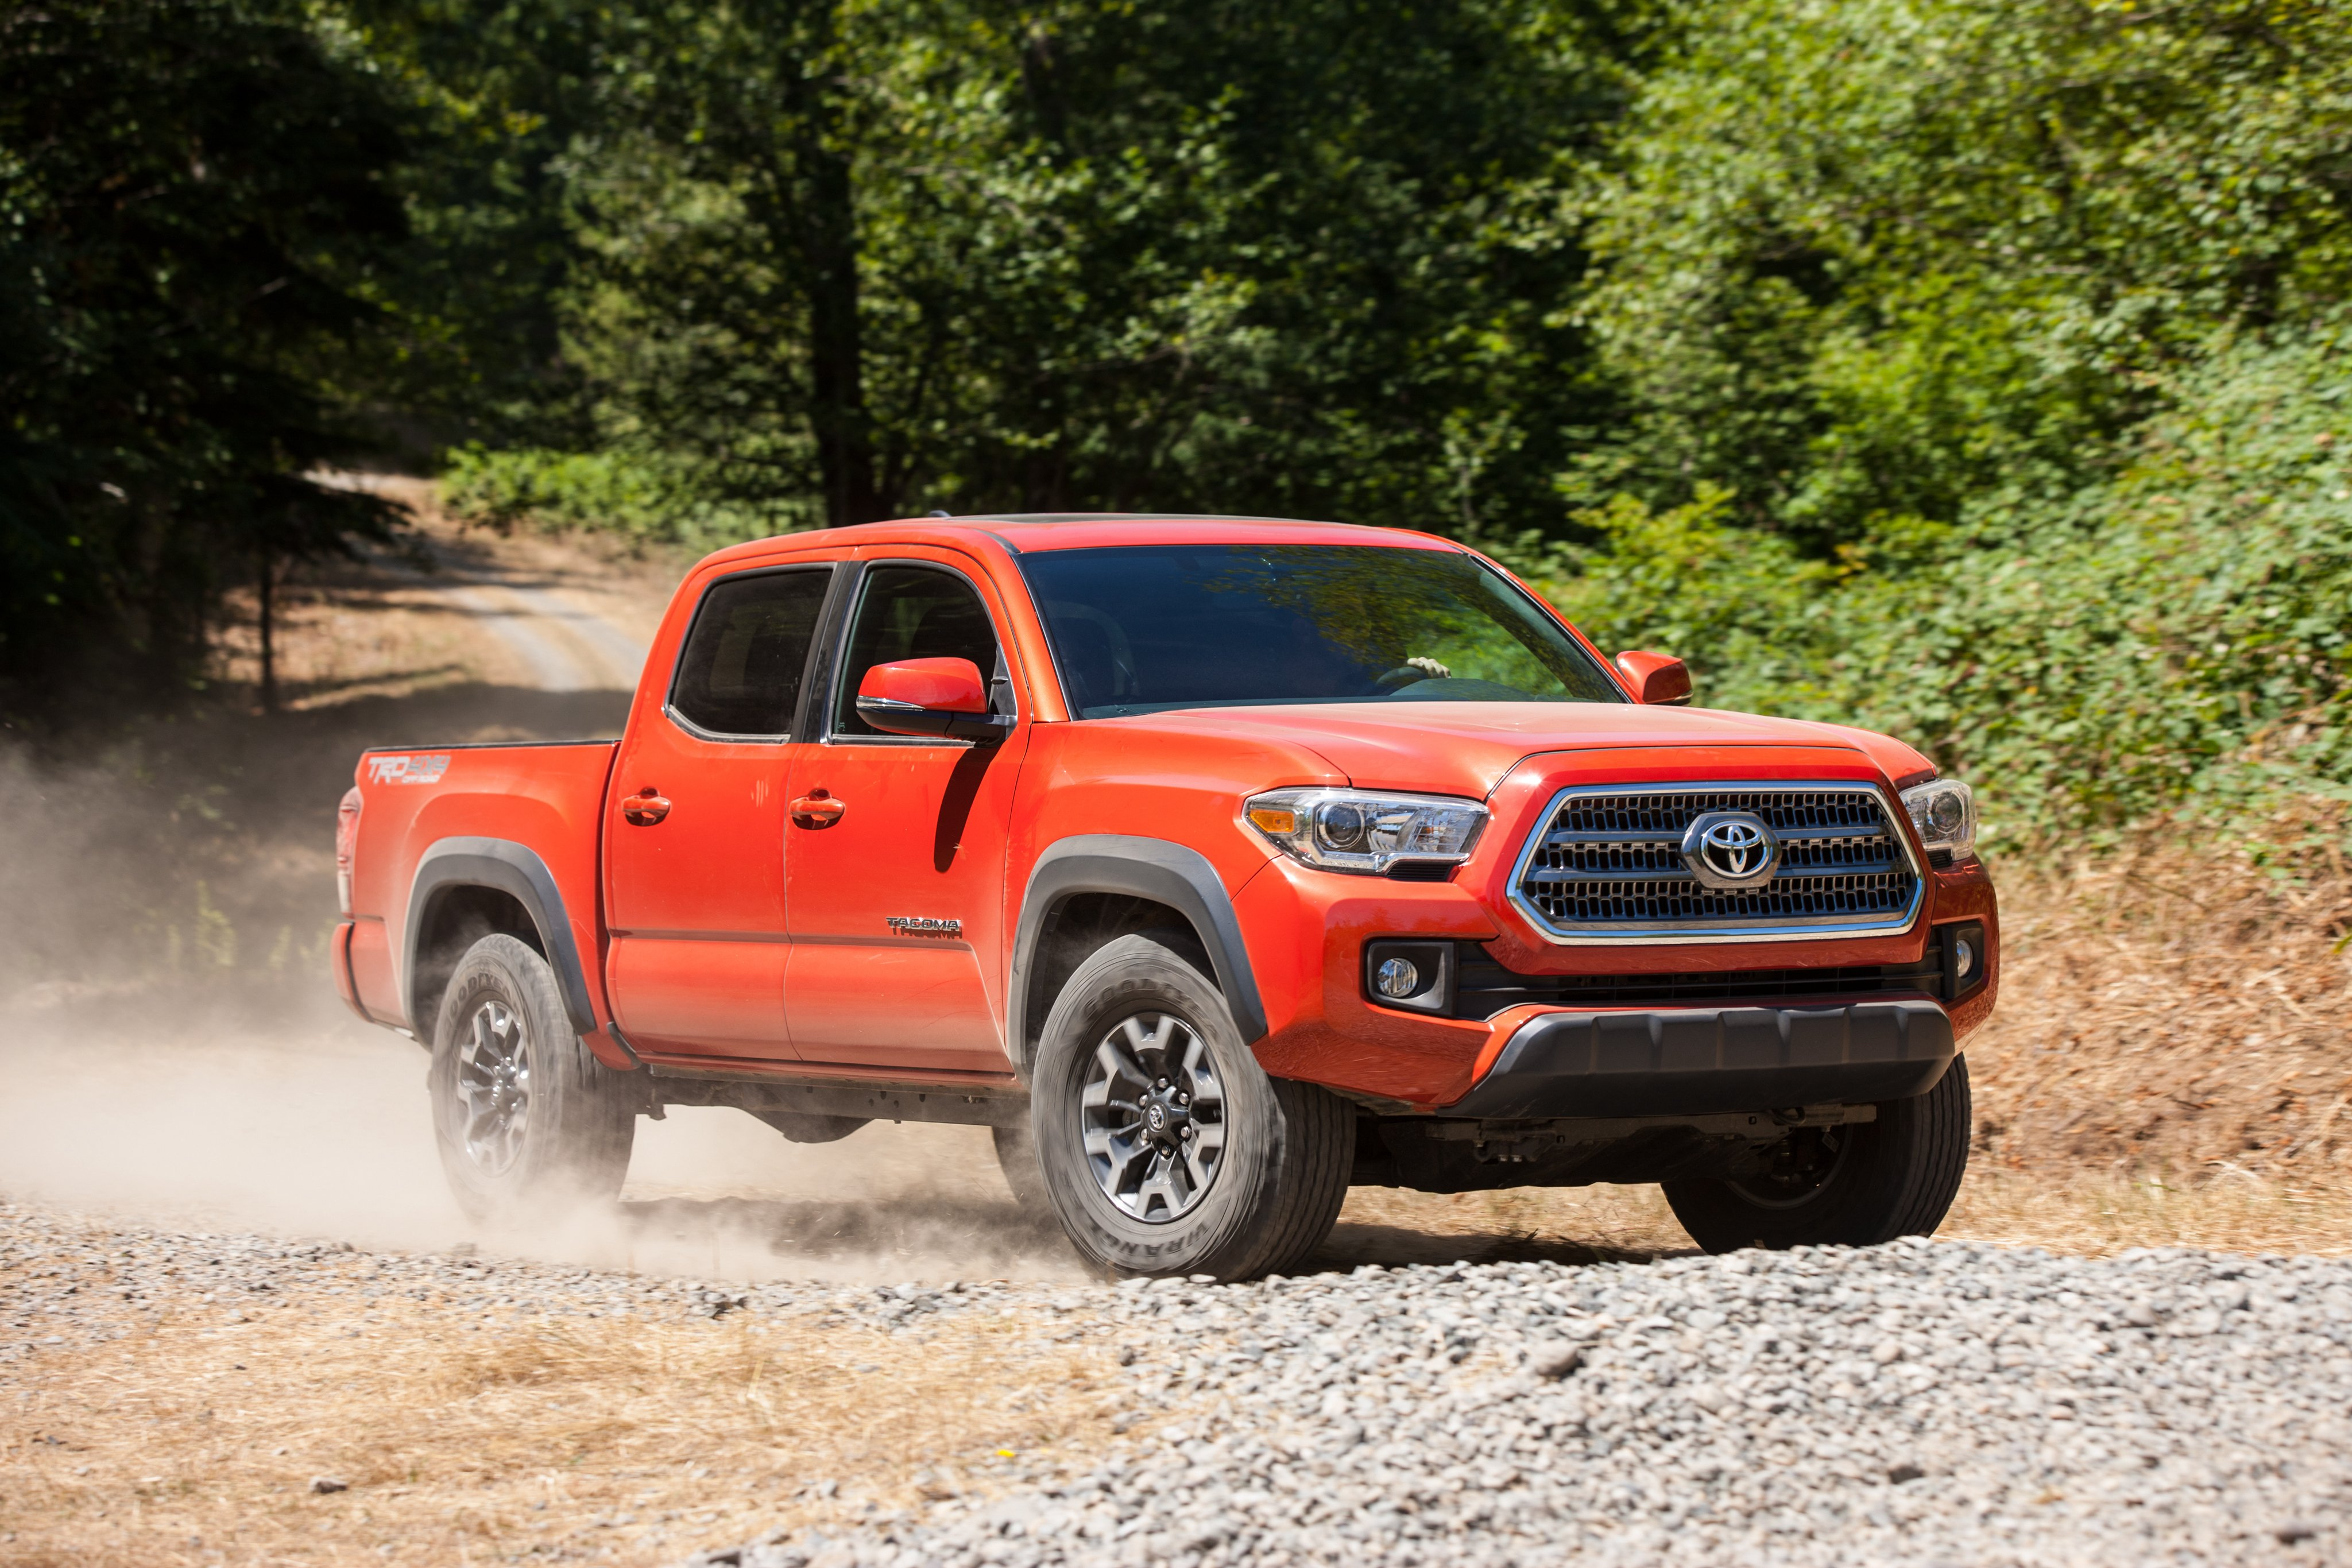 Toyota tacoma trd offroad double cab pickup